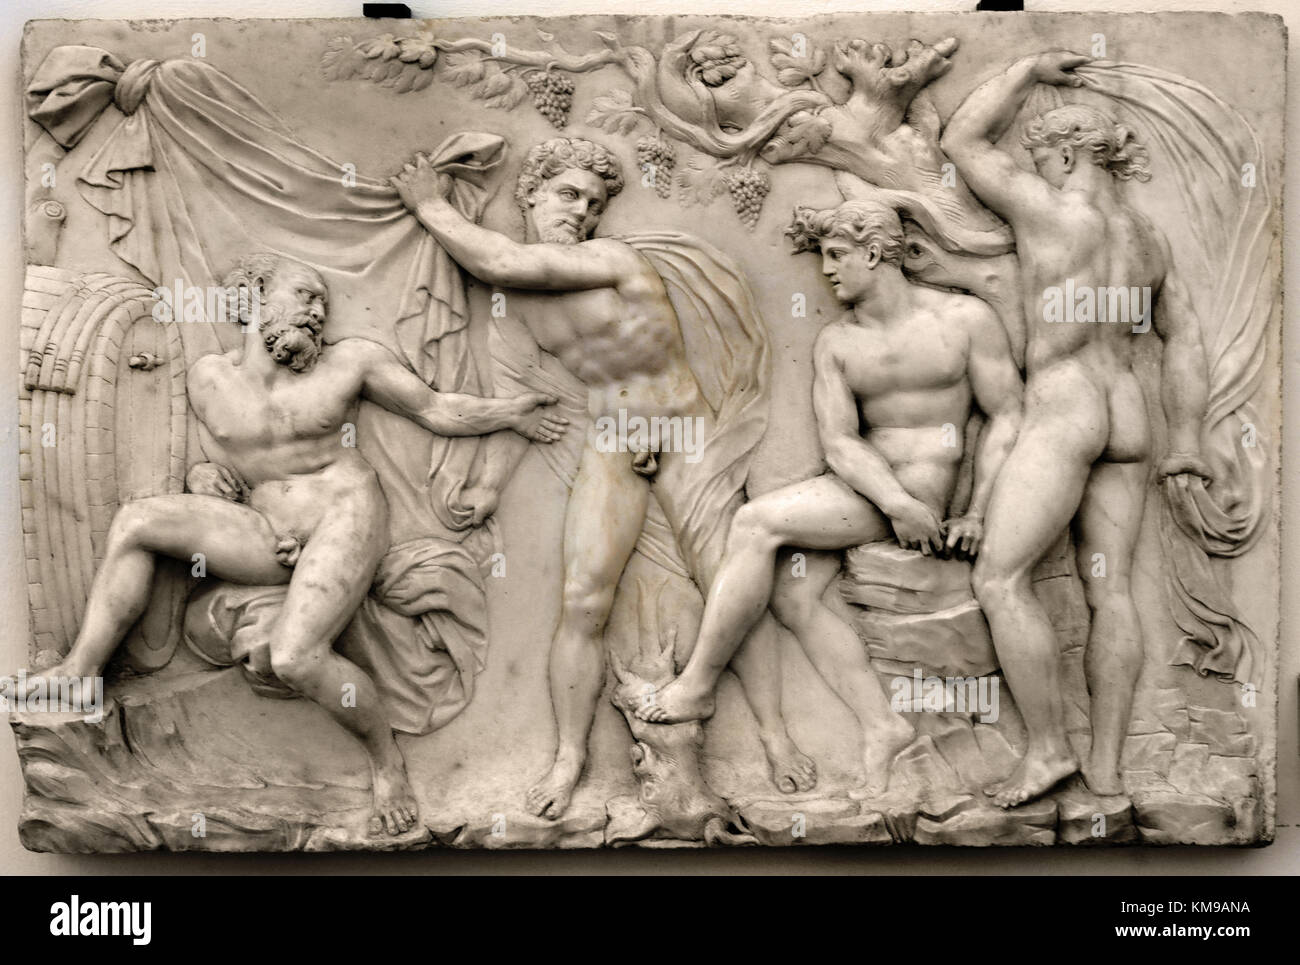 Drunkenness of Noah 1539 Baciio Bandinelli Italian 1493-1560. Carrara marble relief. National Museum of Bargello - Stock Image